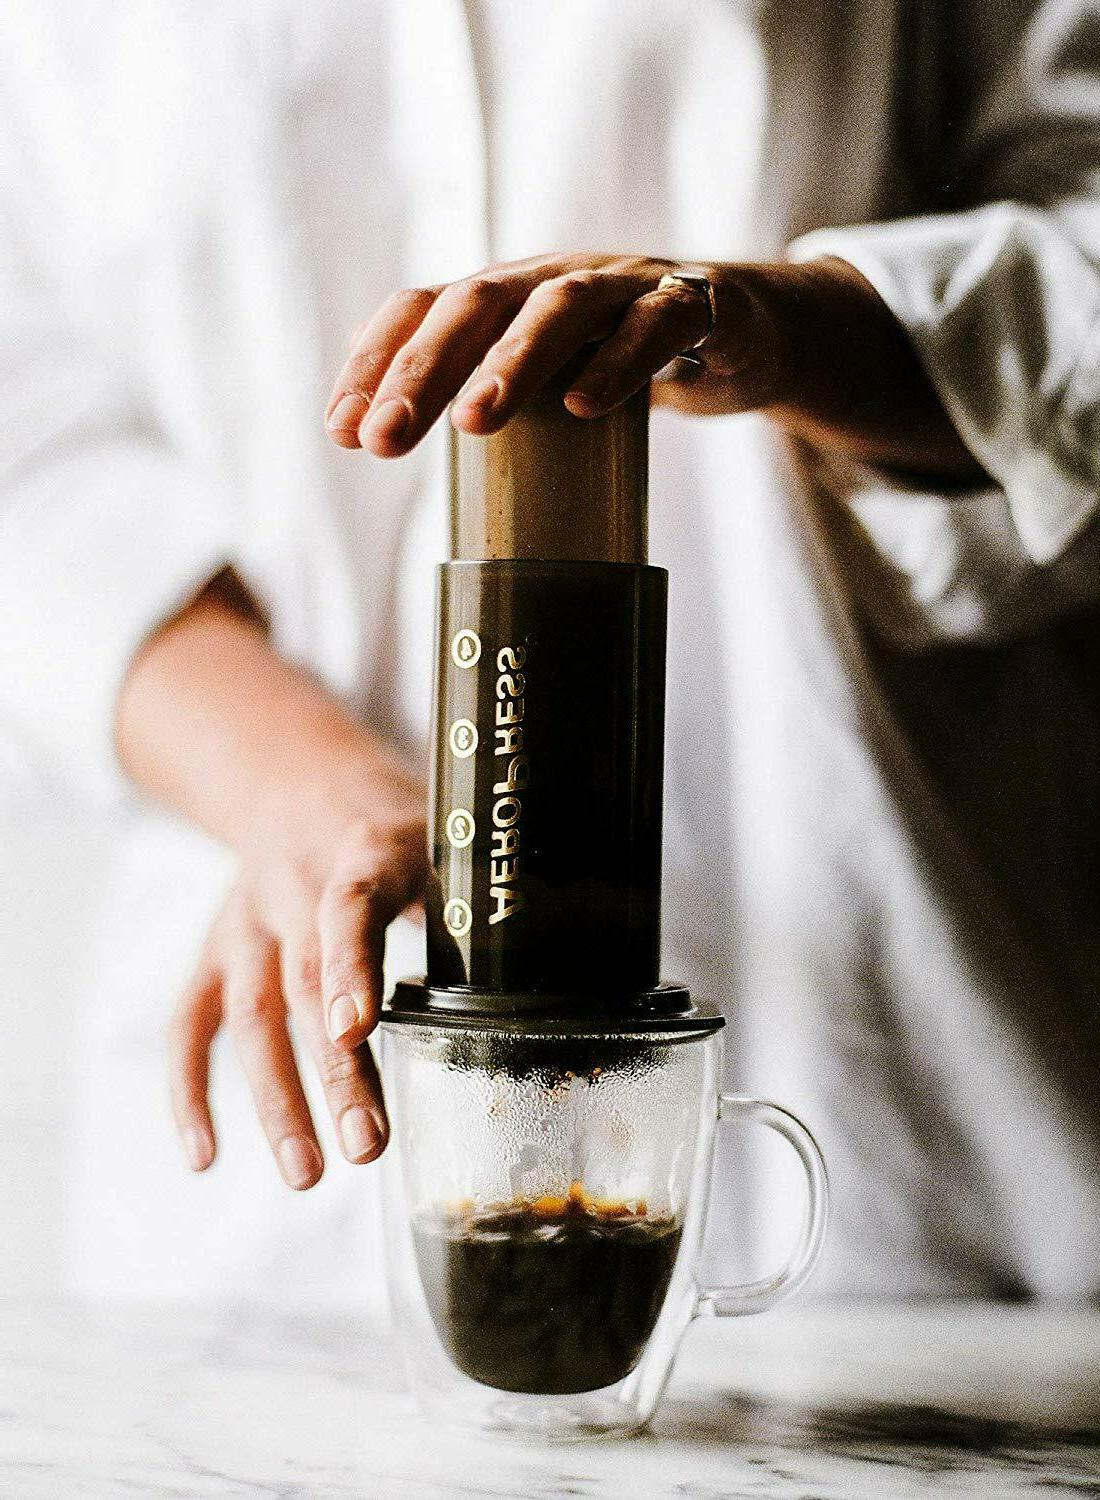 AeroPress Maker - Makes Delicious to Cups